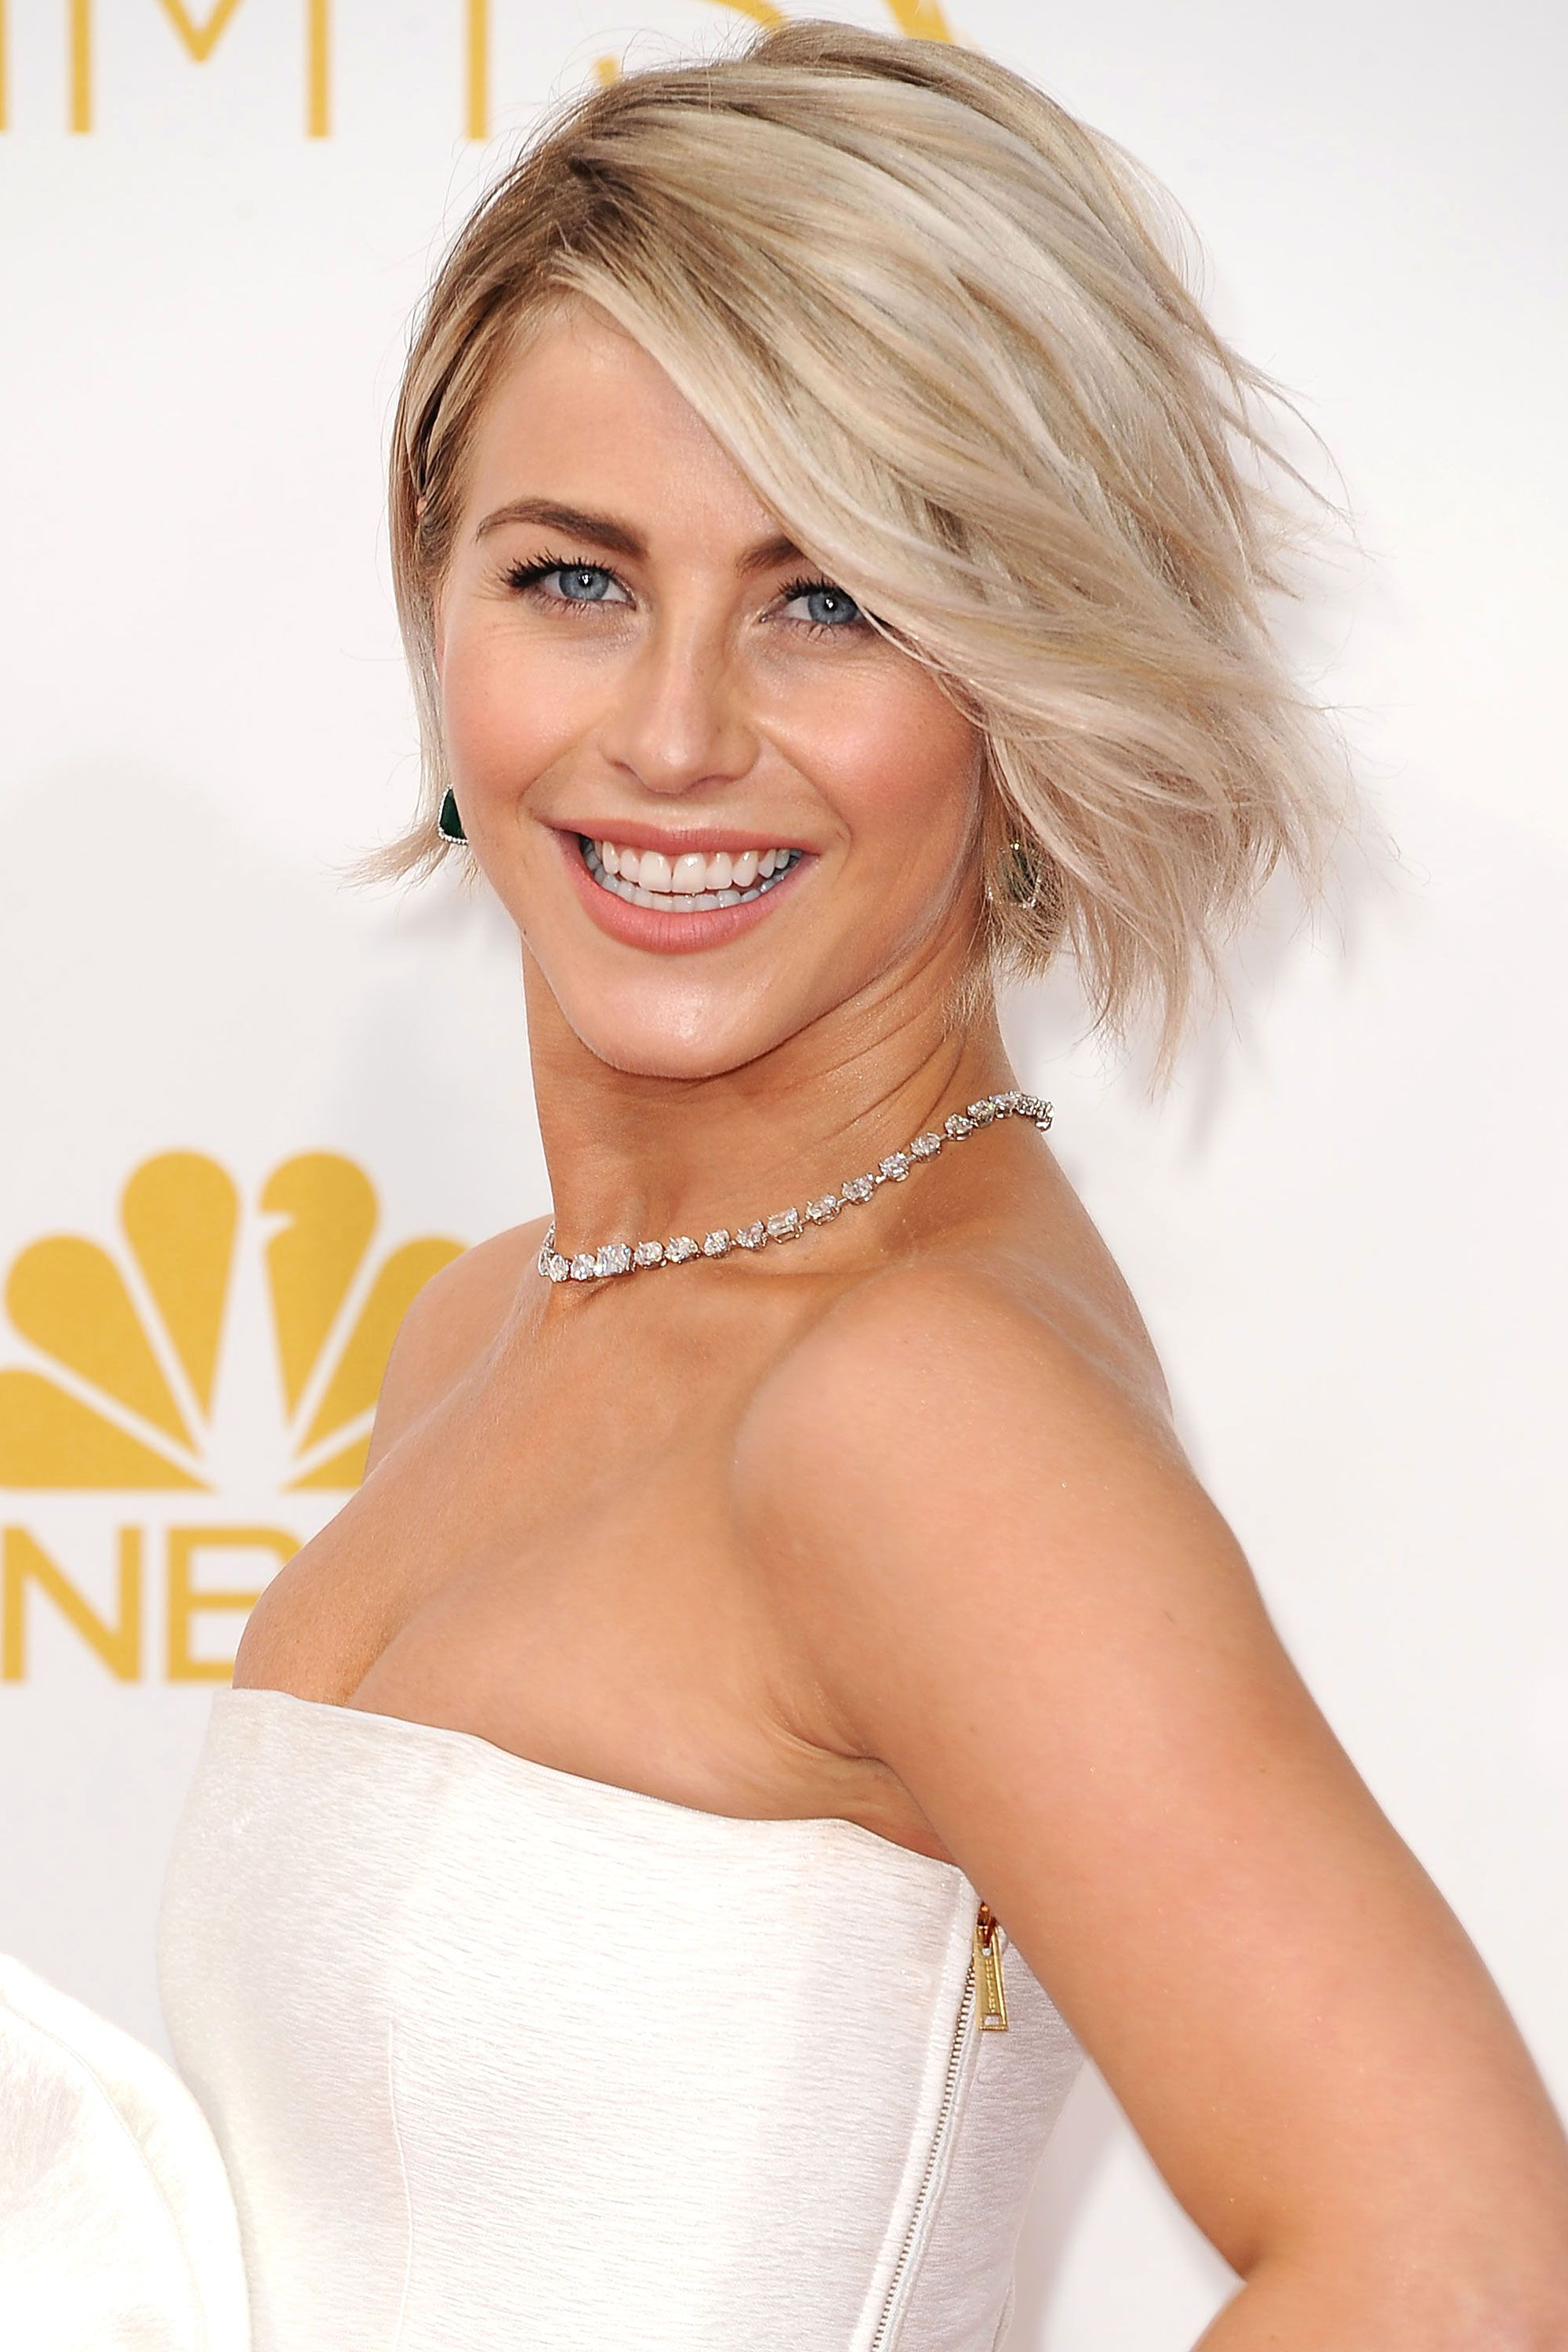 40 blonde hair colors for 2018 - best celebrity hairstyles from